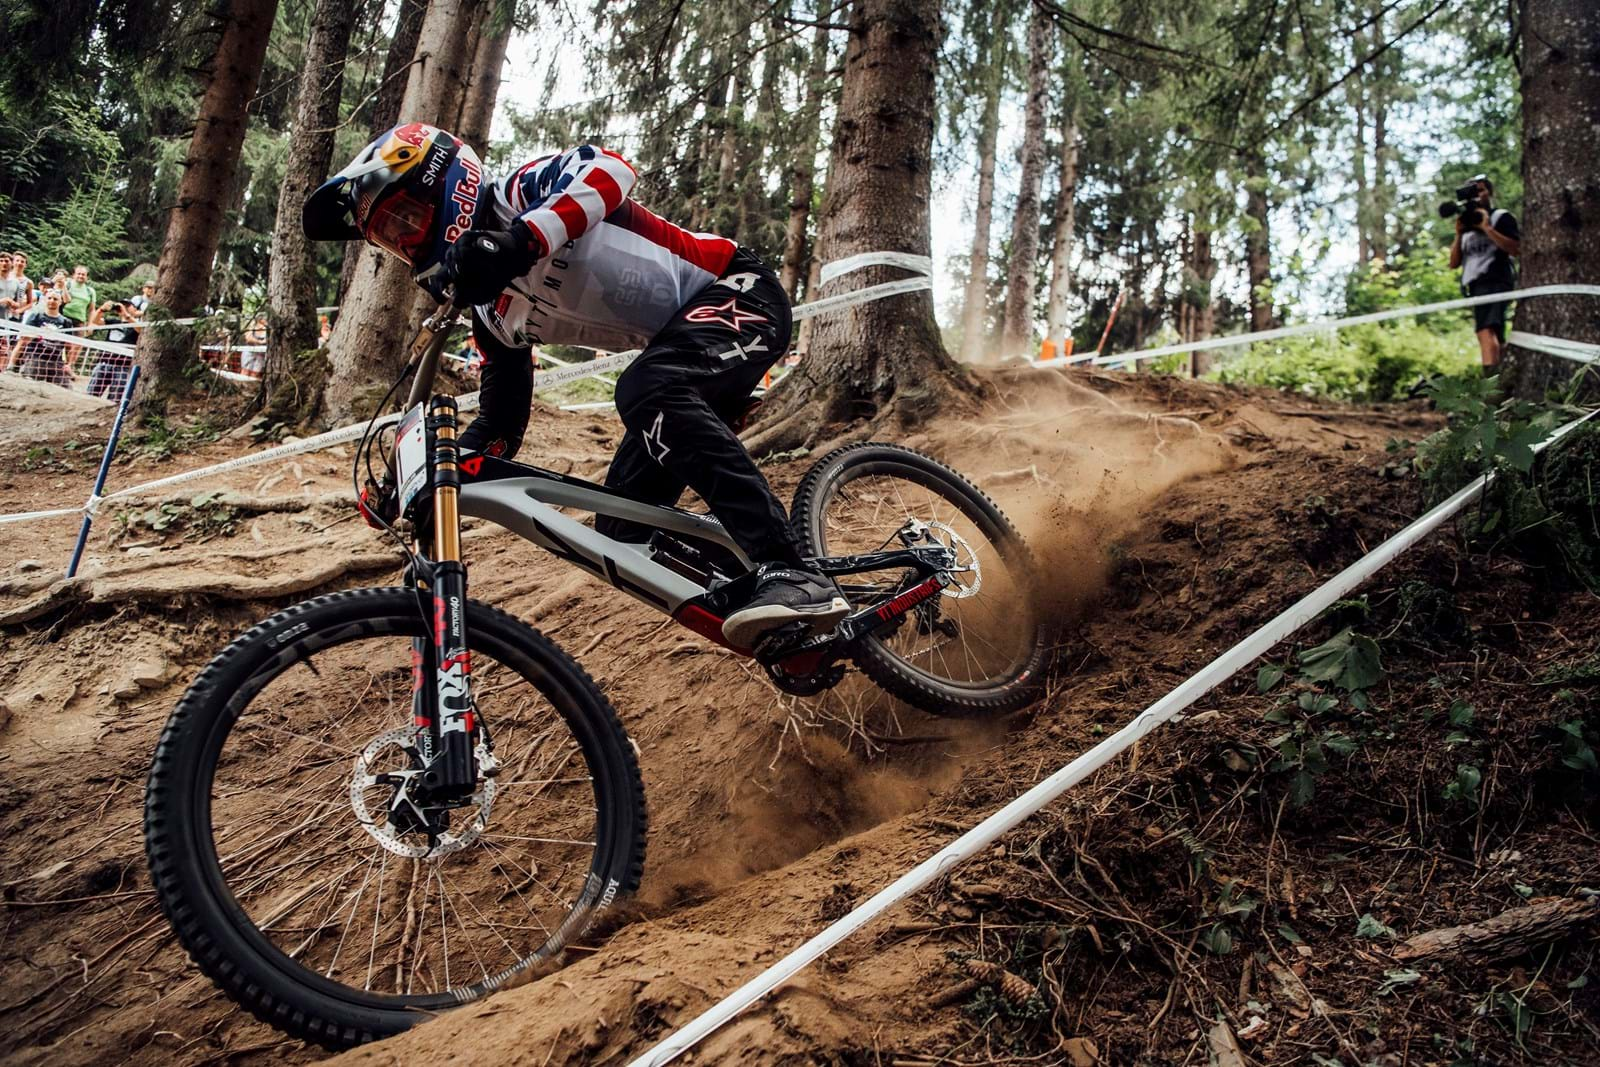 Red Bull Mountain Bike >> Sunset Vine Partners With Red Bull Media House For Mercedes Benz Uci